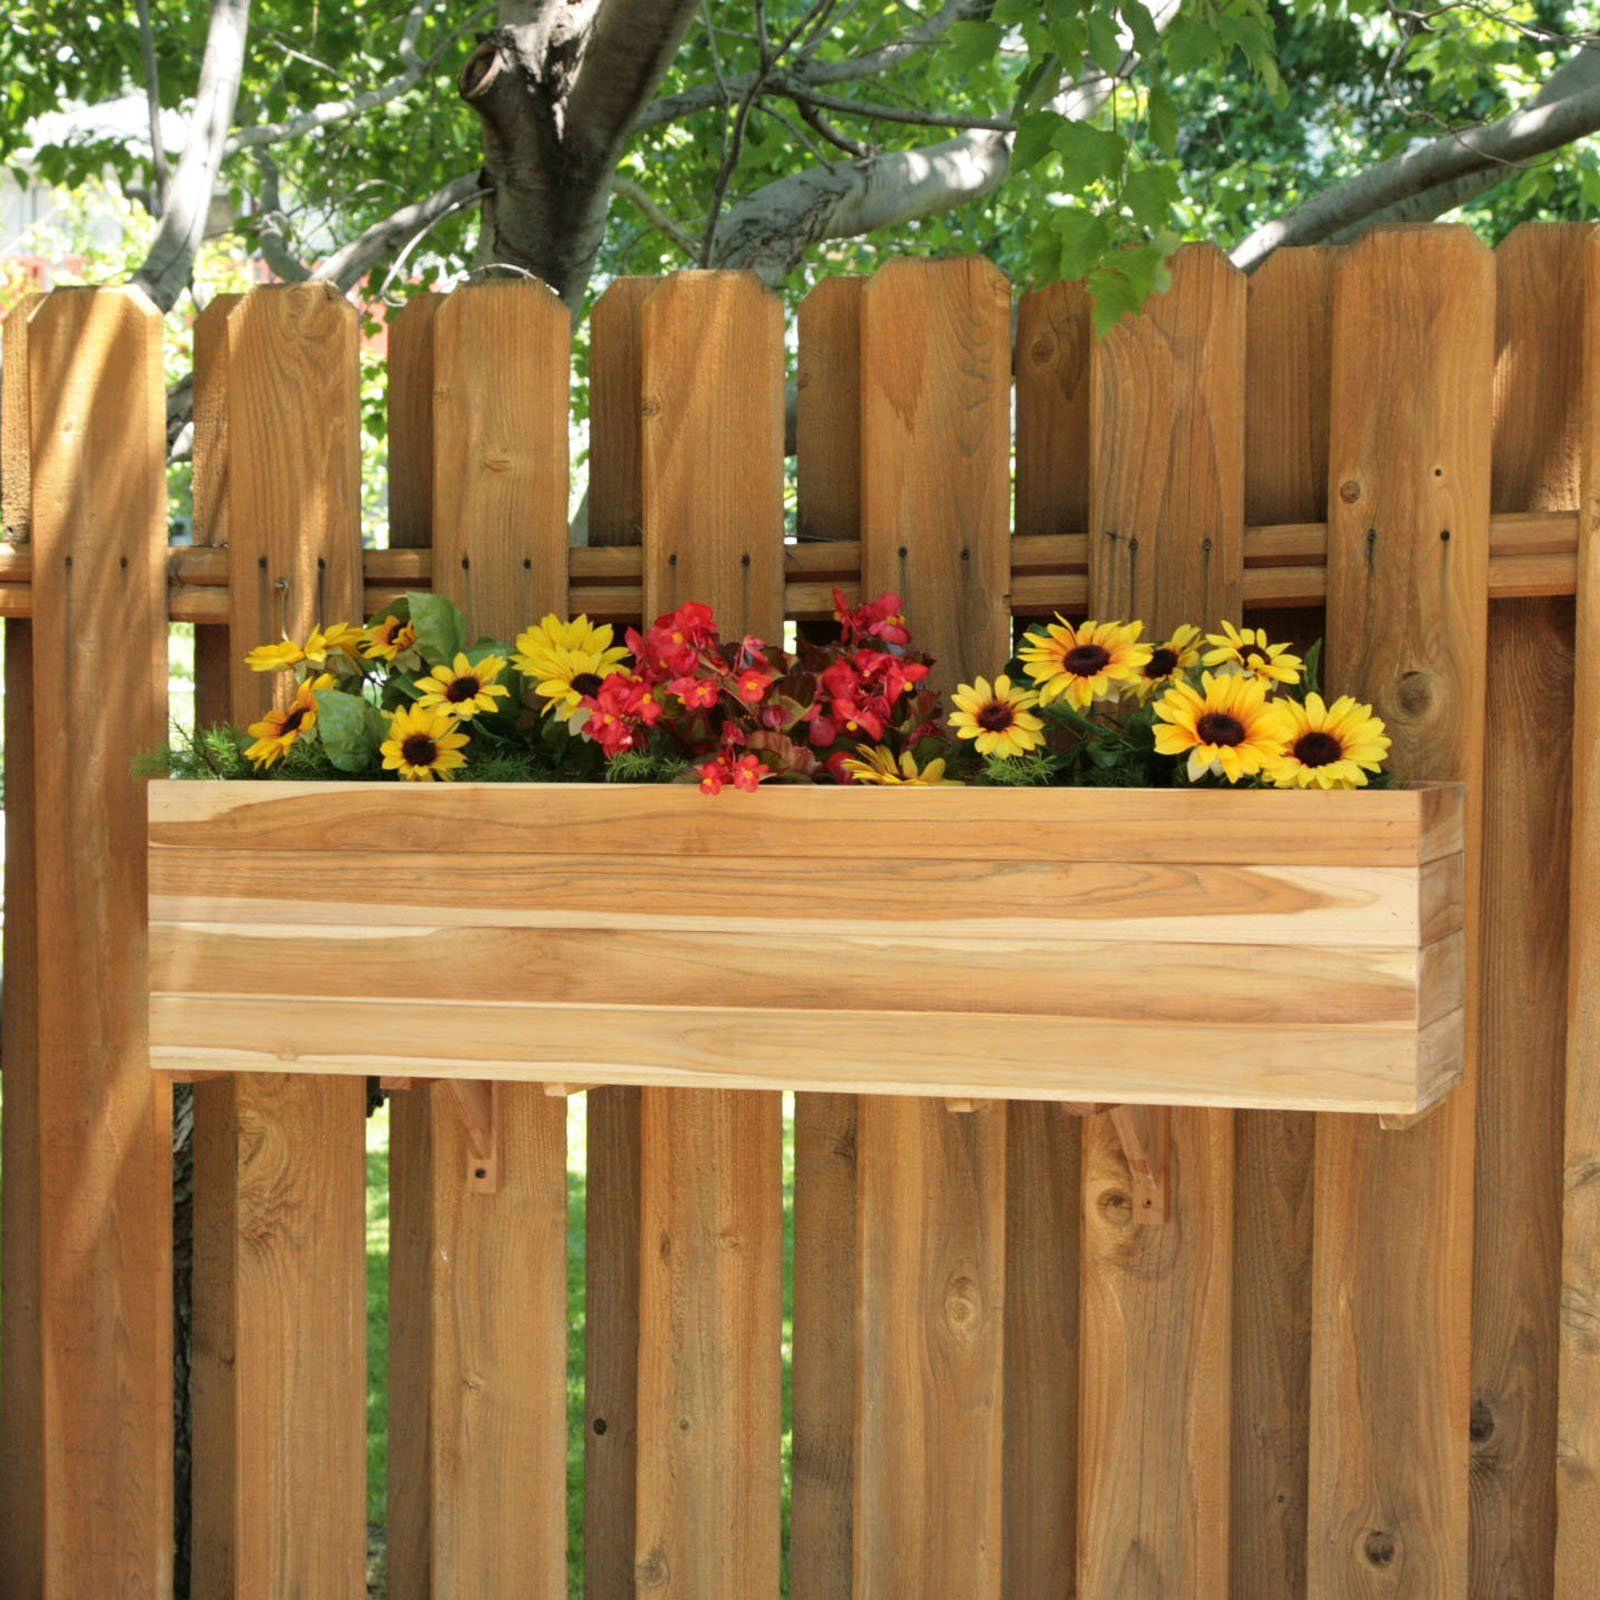 Garden And Patio, Floating Wooden Flower Box Design On Wooden Fence In The  Sideyard Garden House Design Ideas ~ Creative And Inspiring Wood Planter  Boxes ...